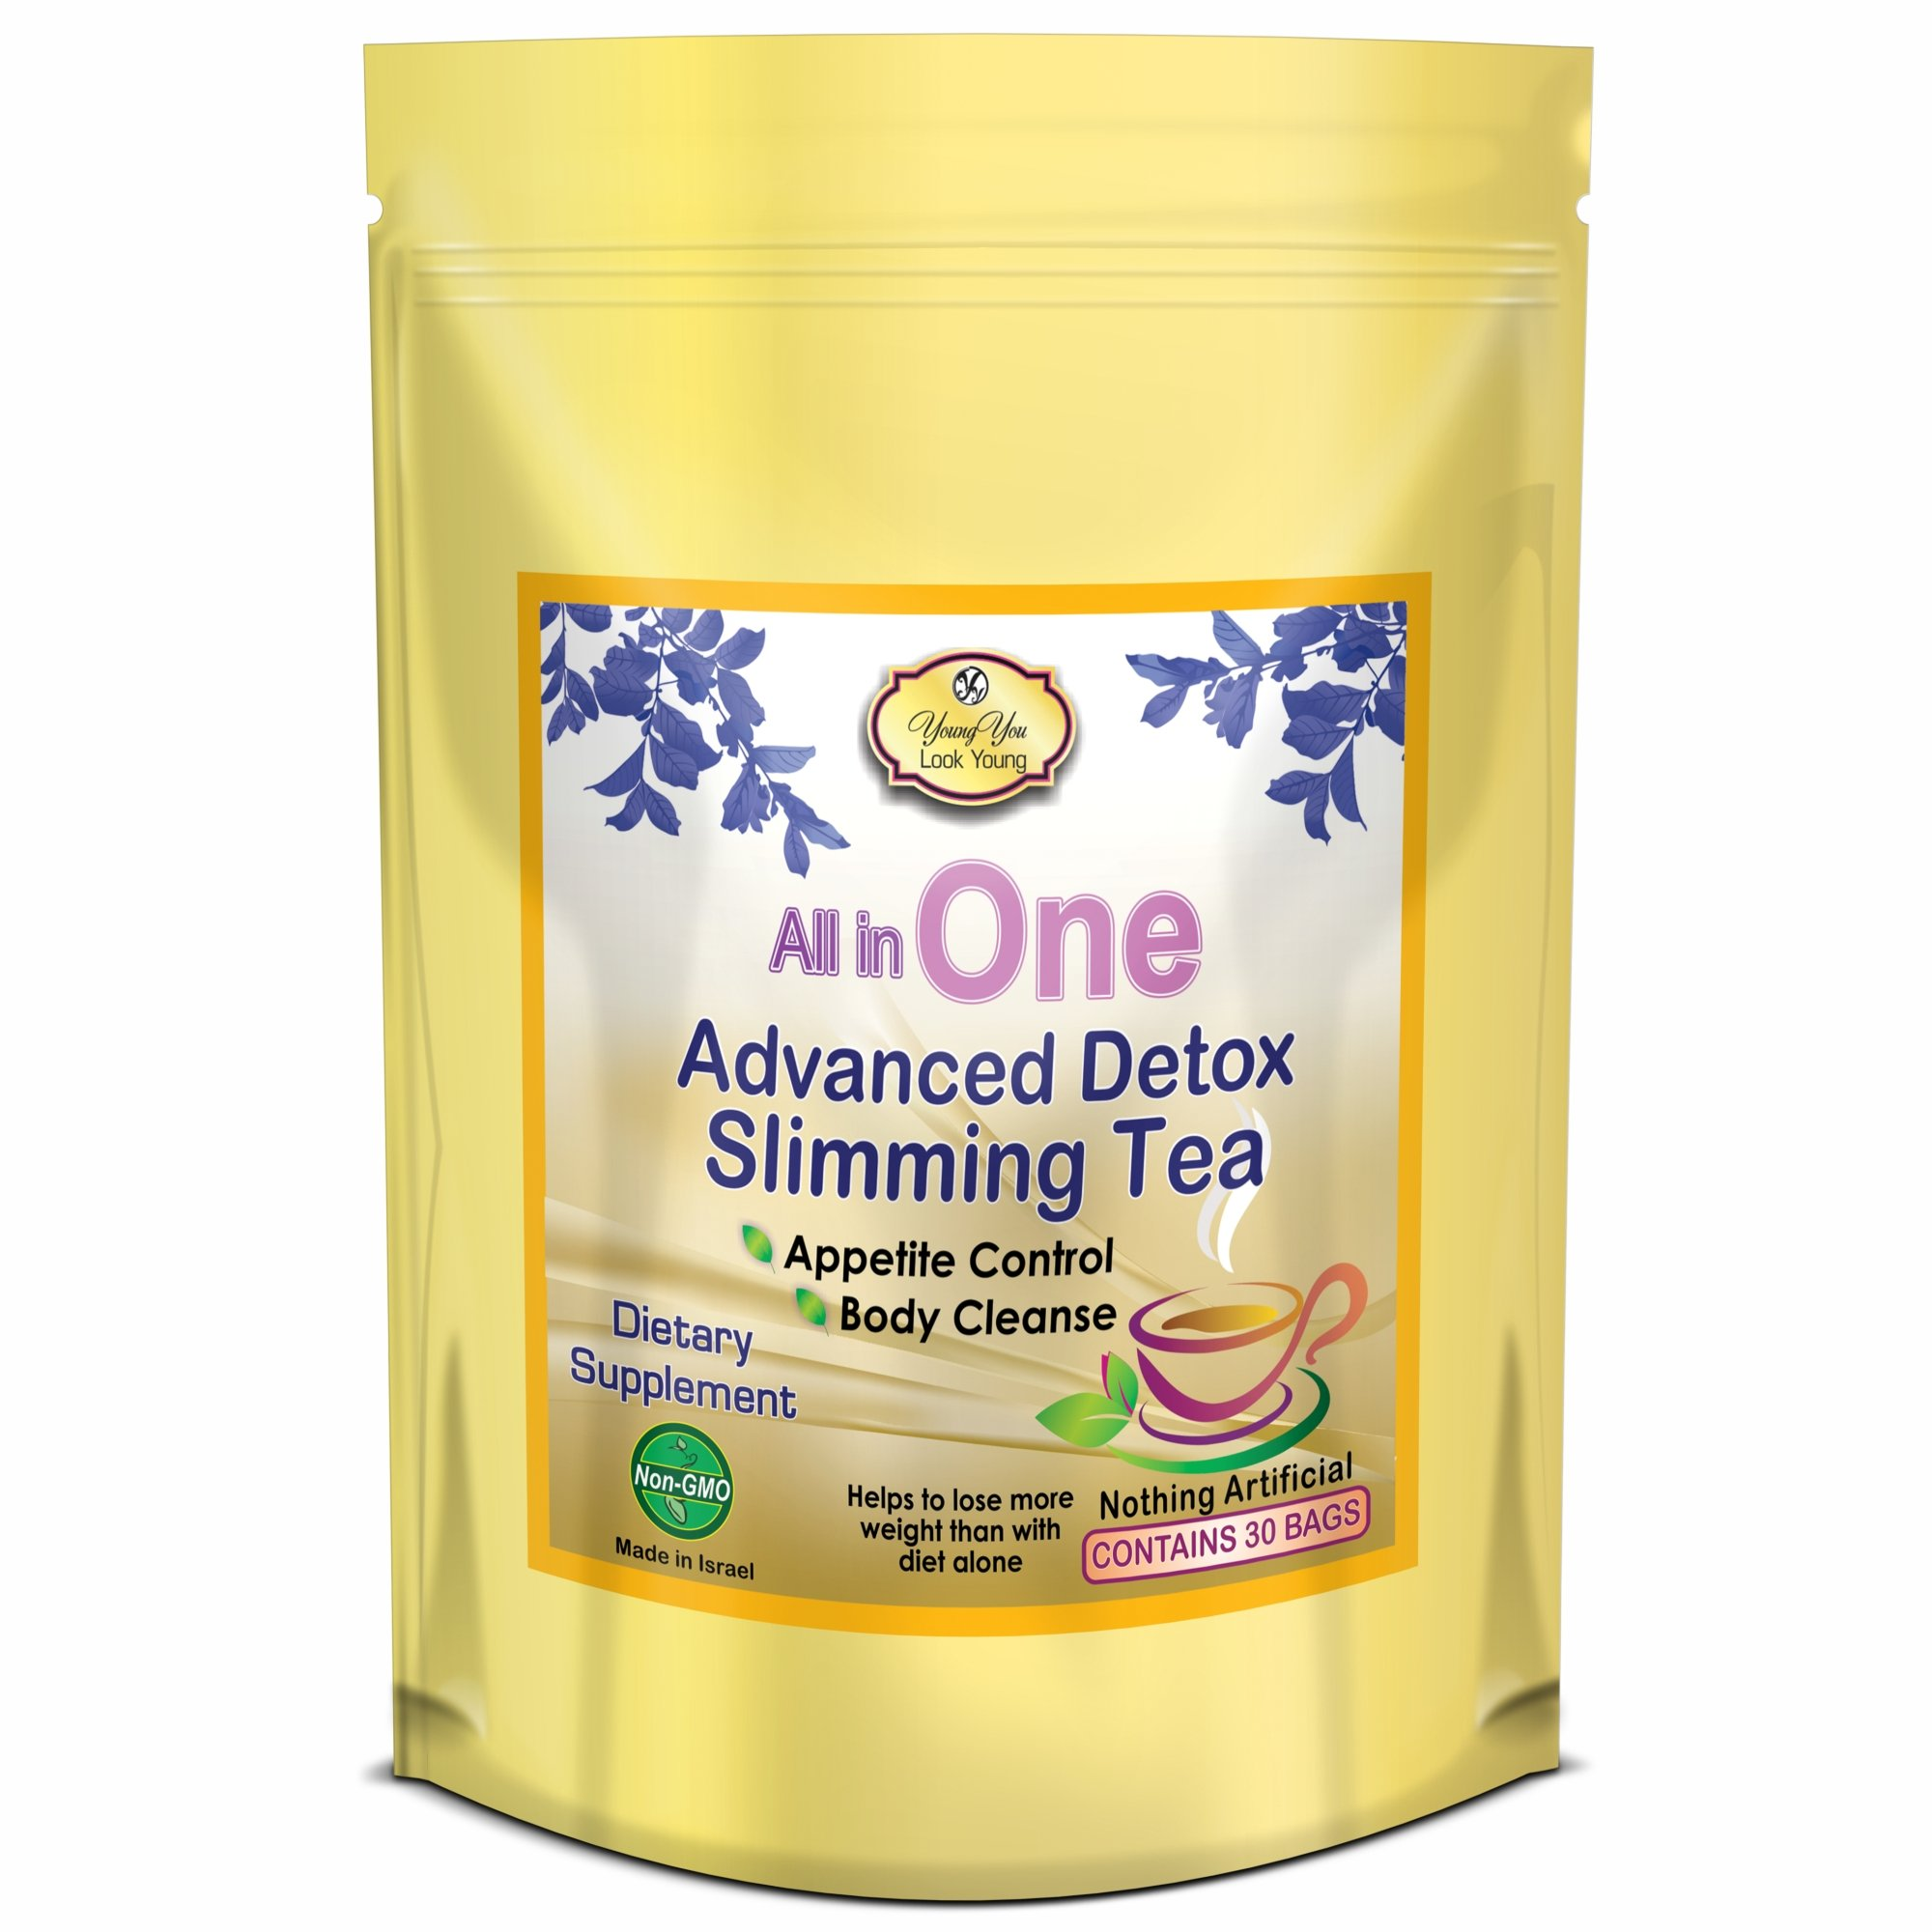 All in One Detox Tea. Appetite Control Diet Tea for Weight Loss, Detox, Cleanse, Energy. 3 Packs